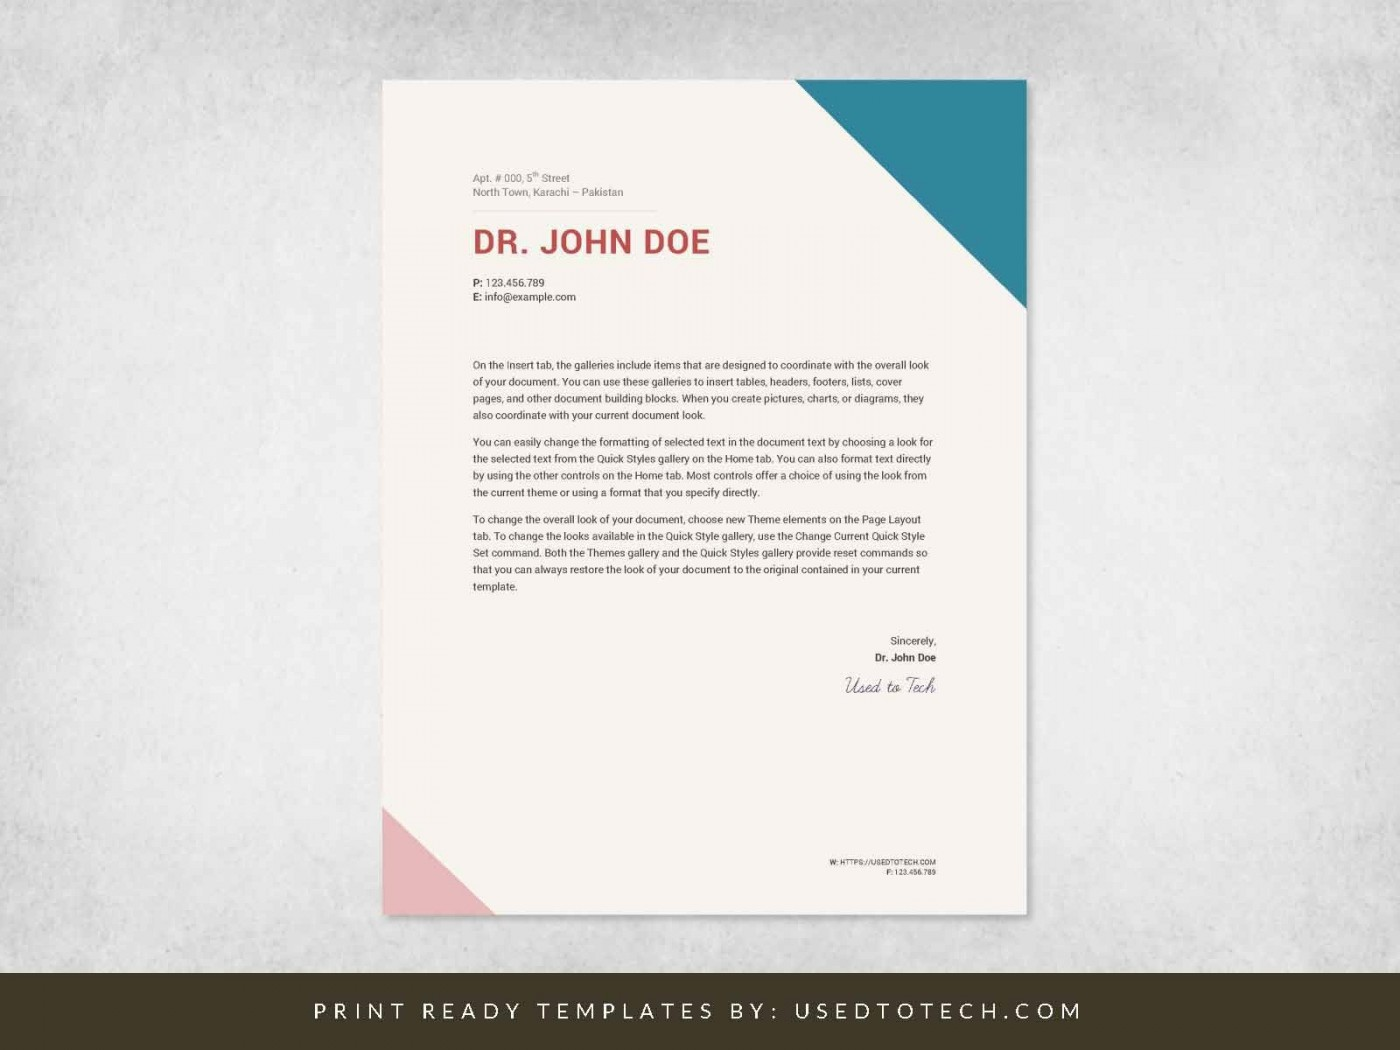 001 Frightening Simple Letterhead Format In Word Free Download Idea 1400